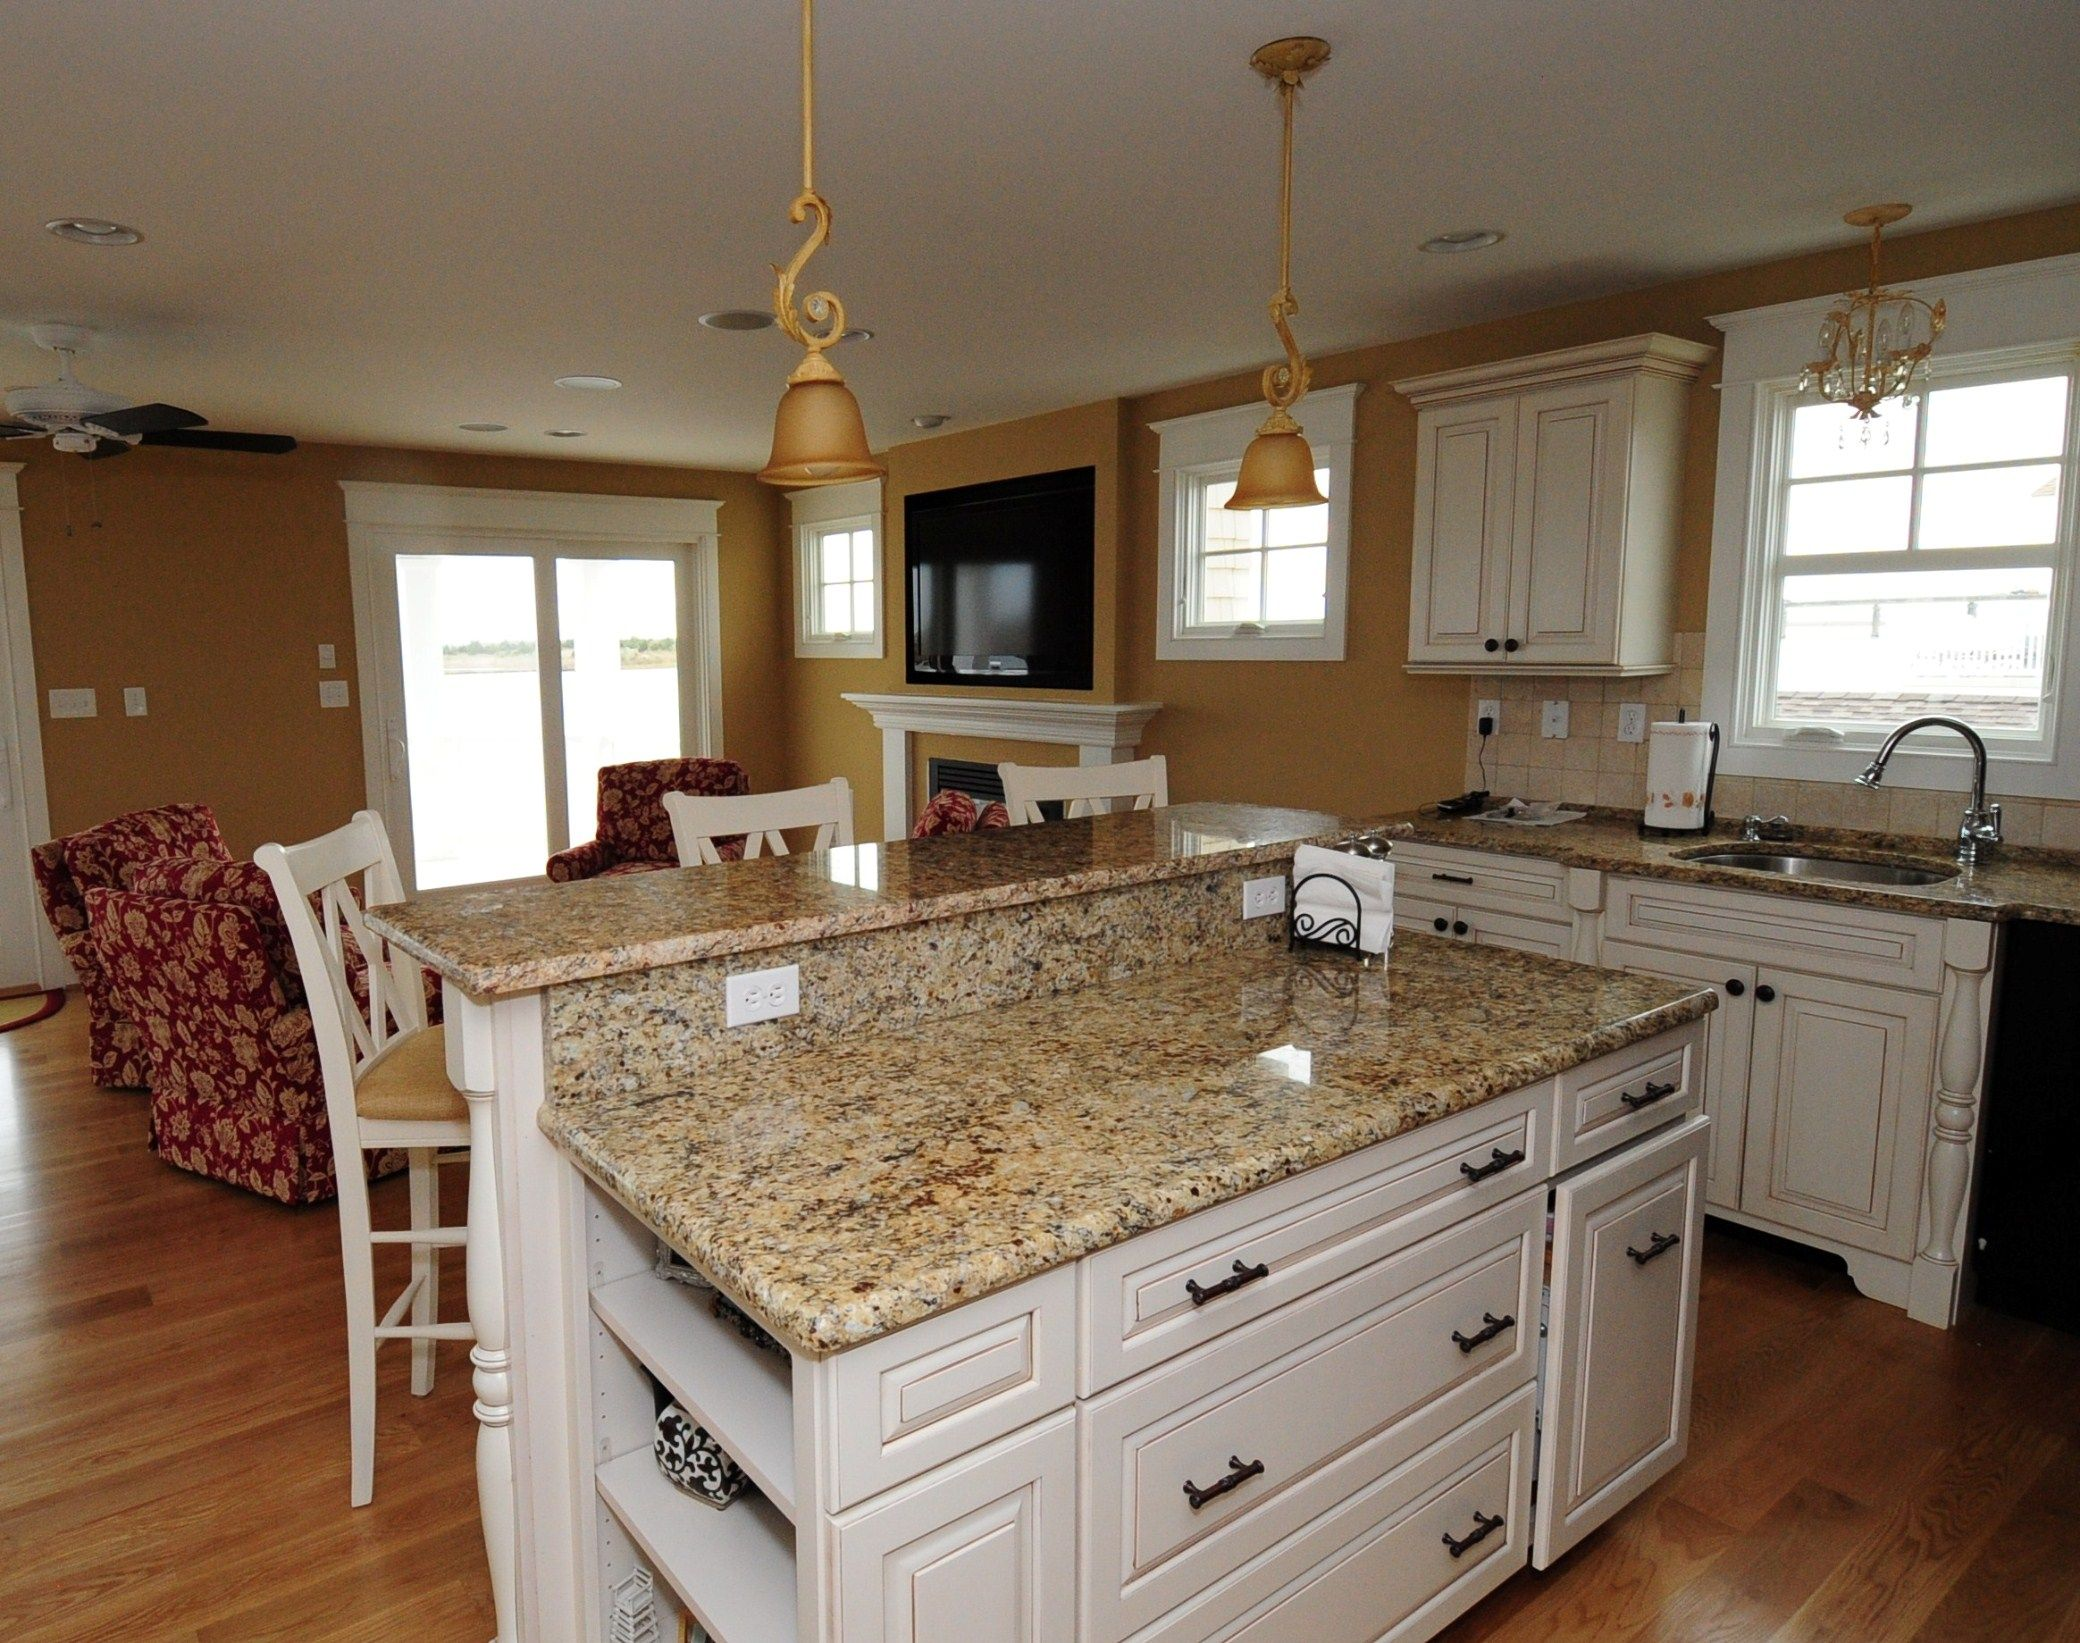 Best Granite For Kitchen Kitchen Best Granite Colors For White Cabinets With Tv On Wall